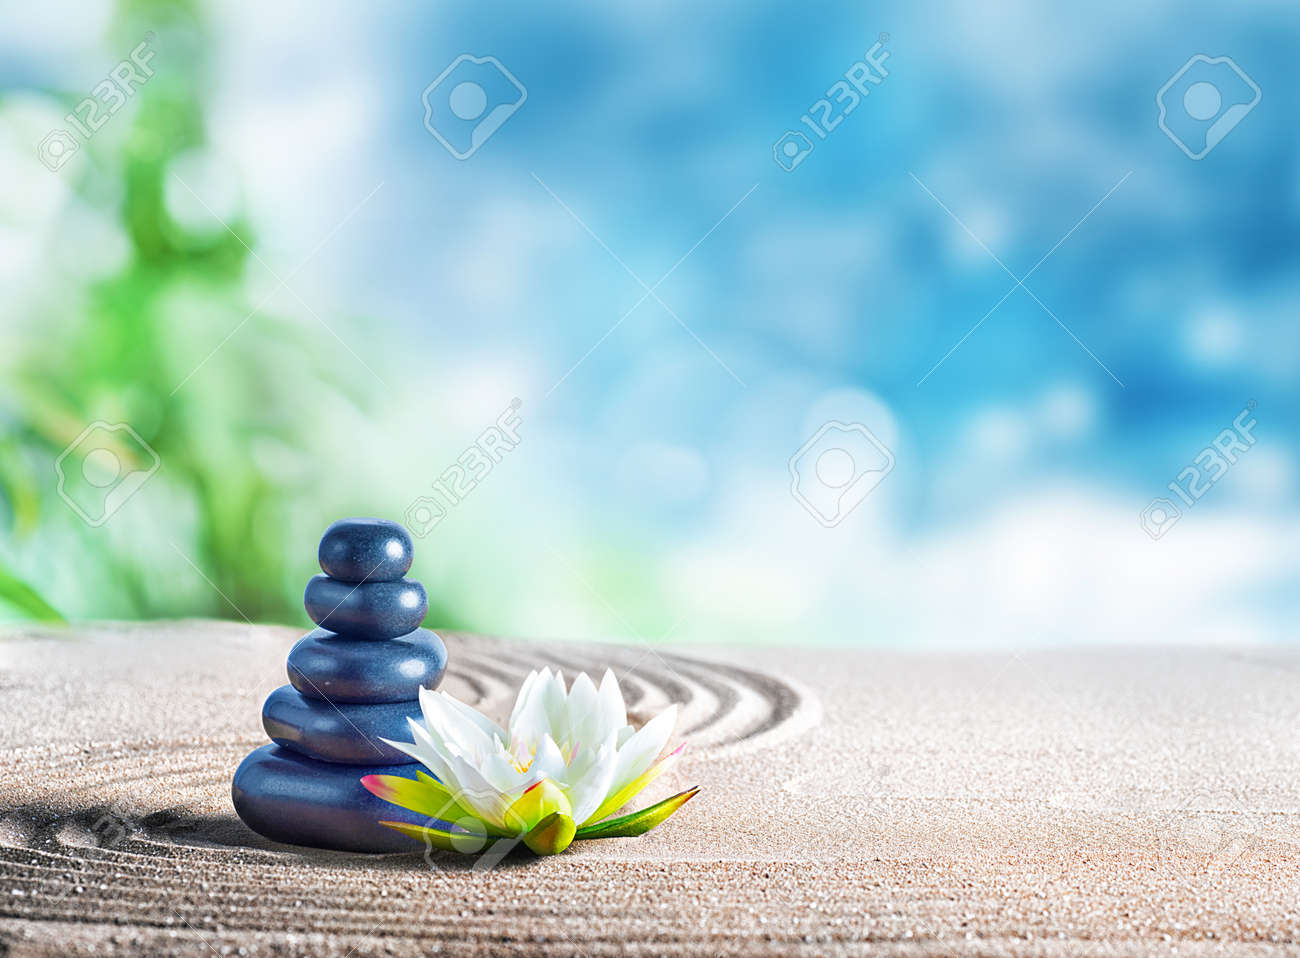 Therapy Relaxing Spa Treatment With Oriental Stones On The Sand Stock Photo Picture And Royalty Free Image Image 66762272